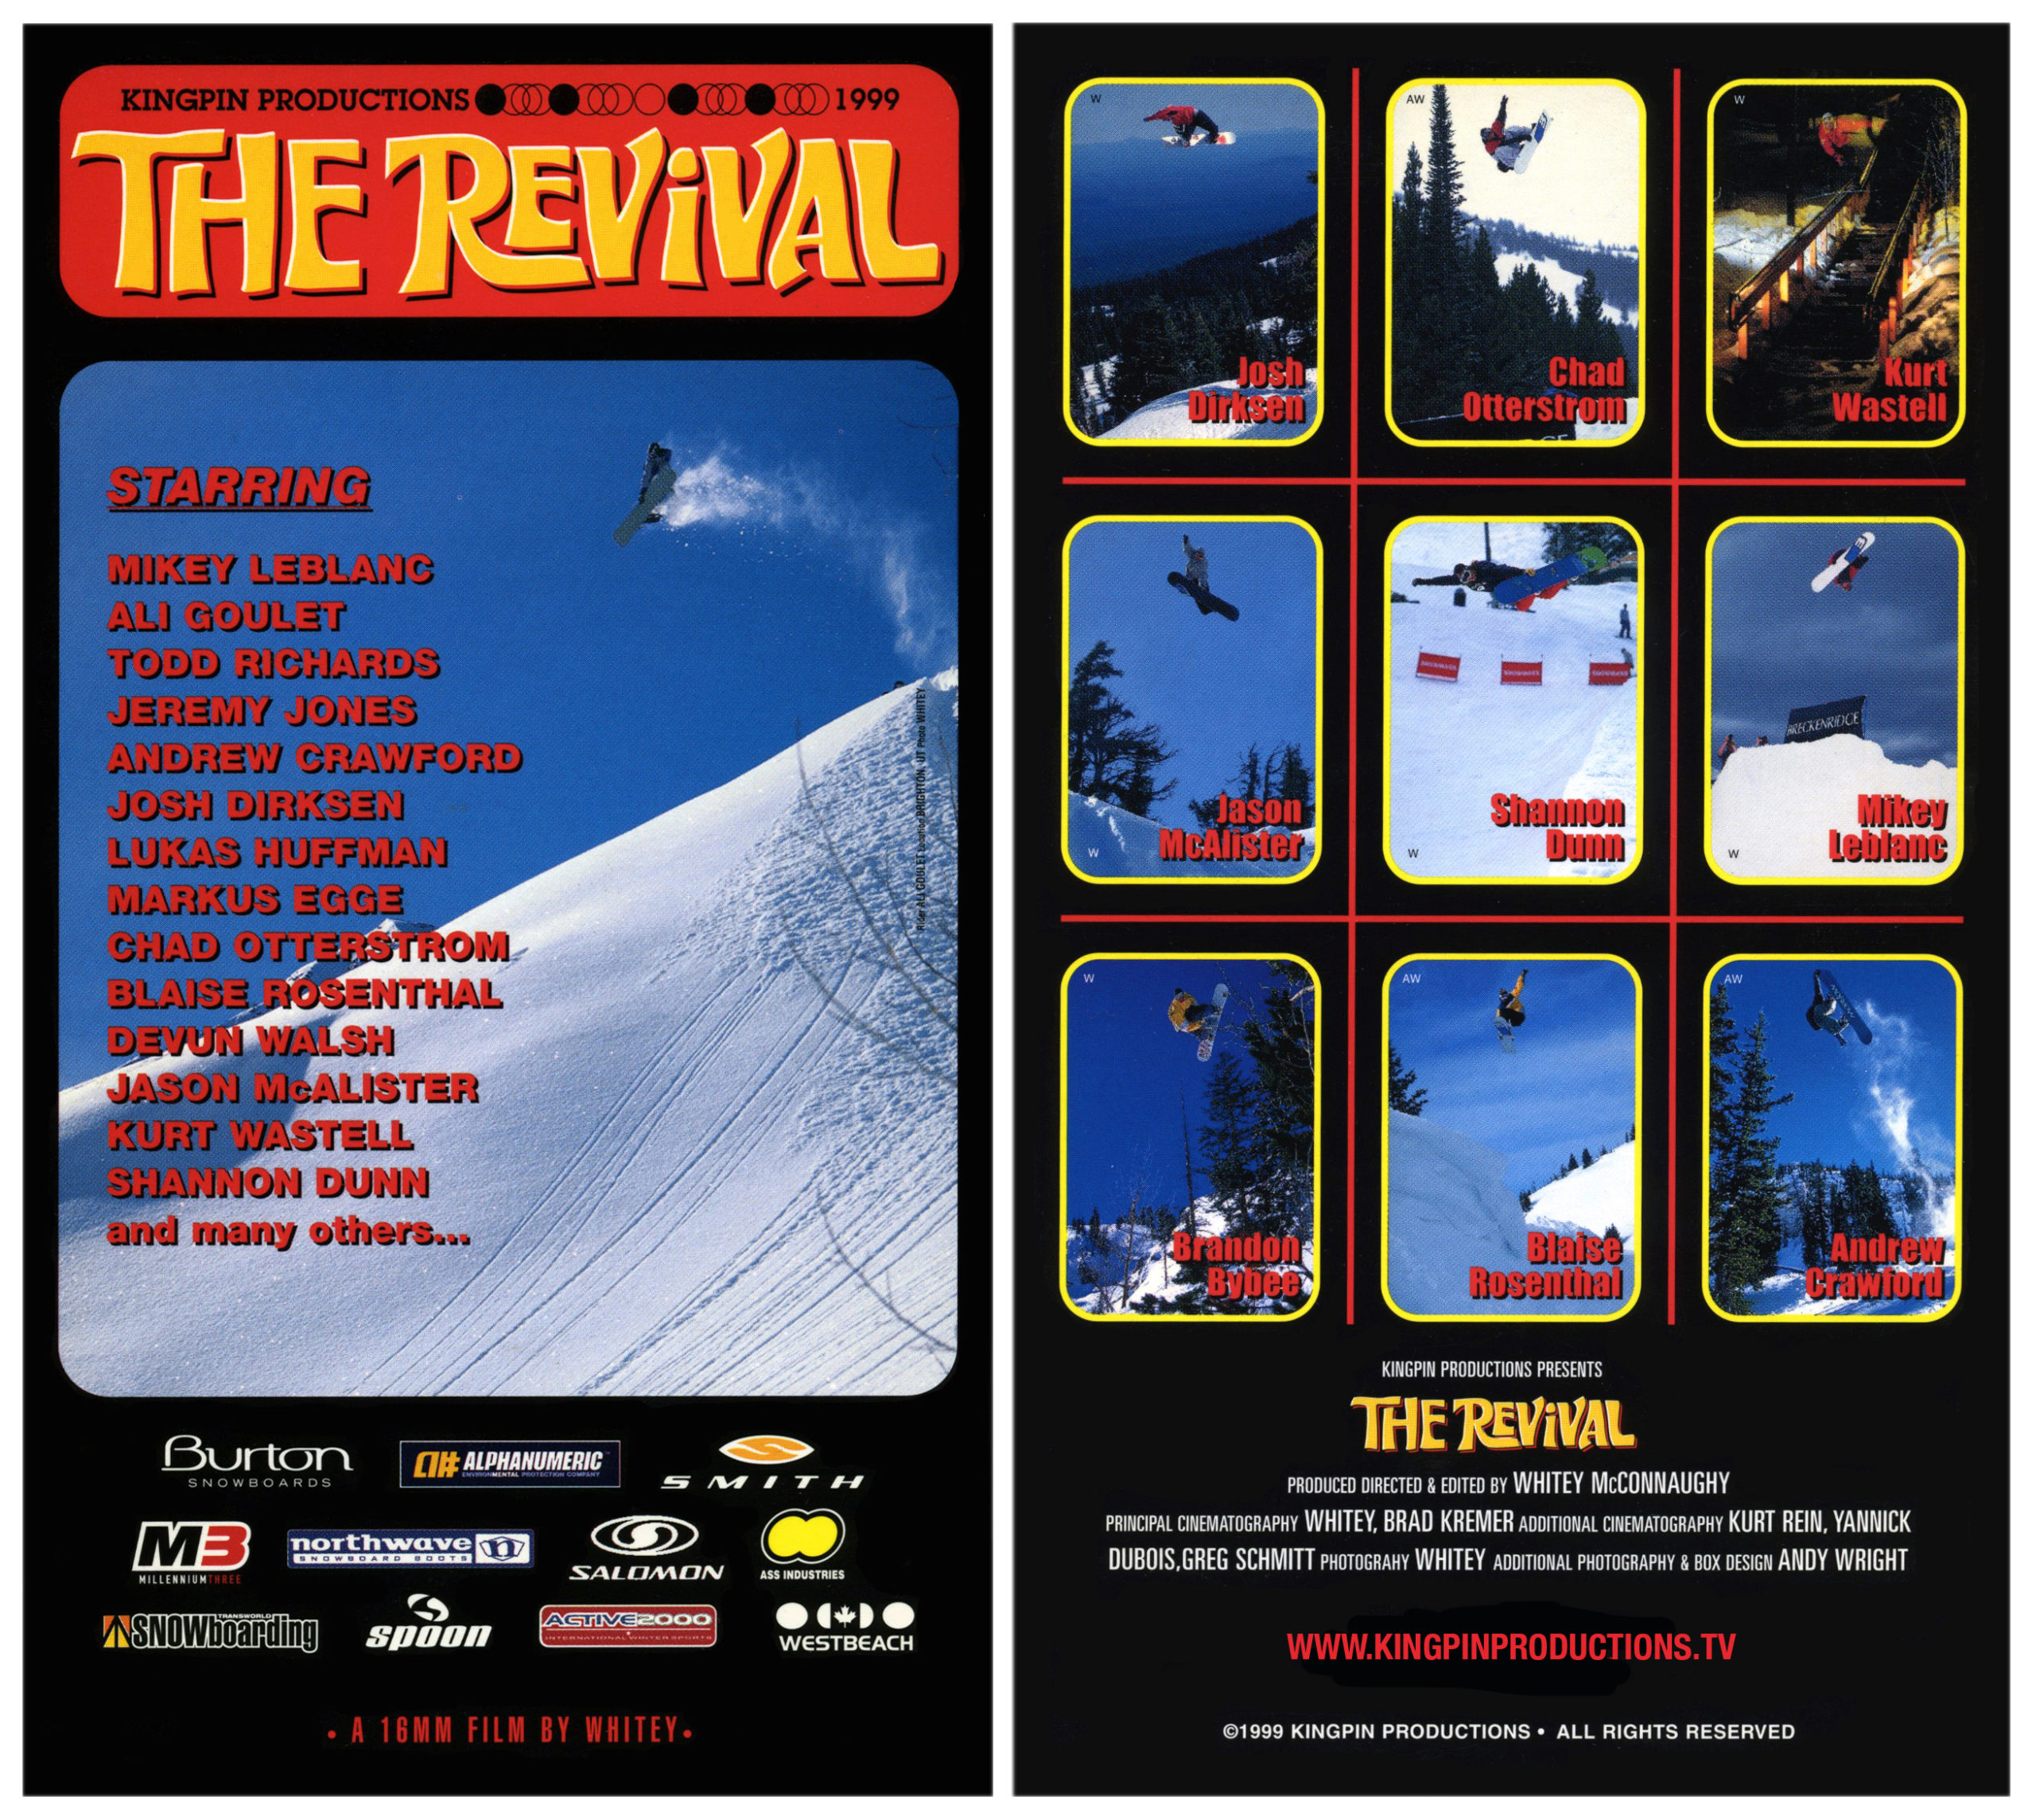 Kingpin Productions The Revival